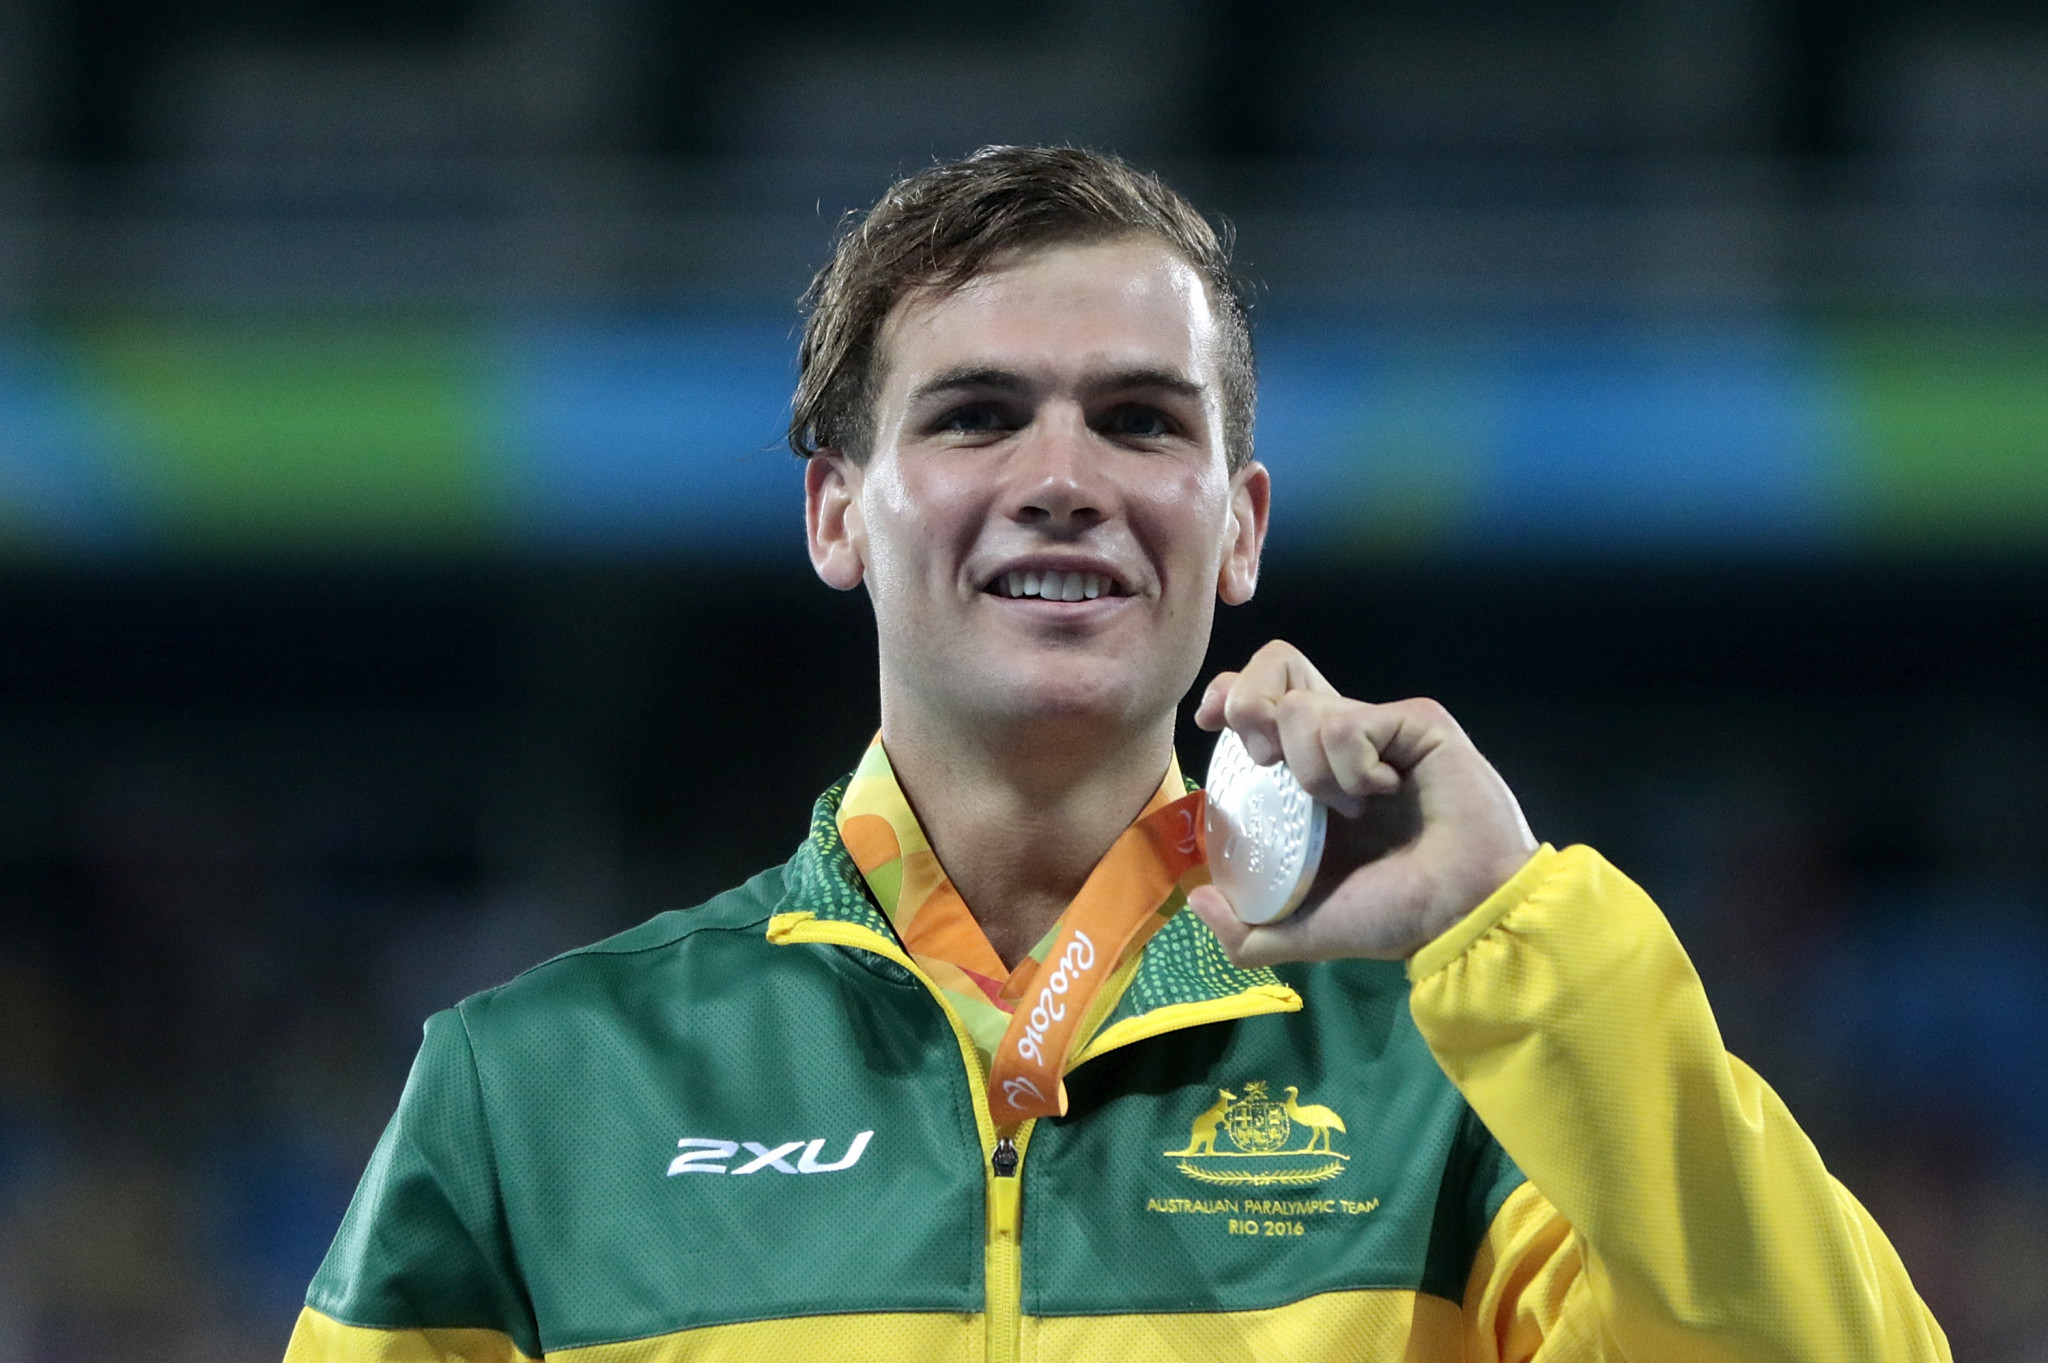 Three Tasmanian athletes won medals at the 2016 Paralympic Games, including Deon Kenzie in the T38 1500m ©Getty Images